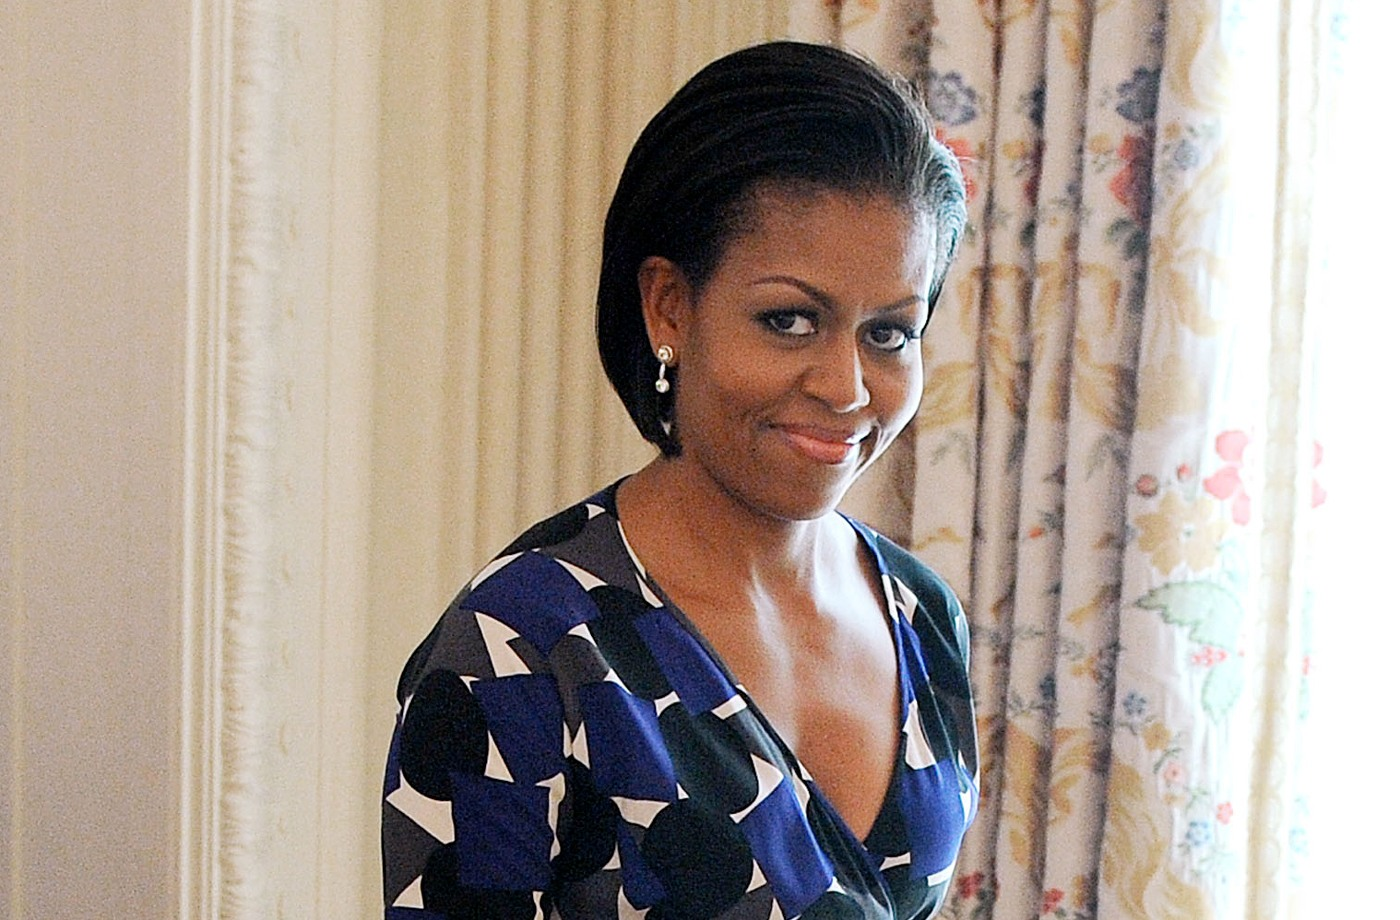 Thumbnail for Michelle Obama says her past miscarriage made her feel like she 'failed'